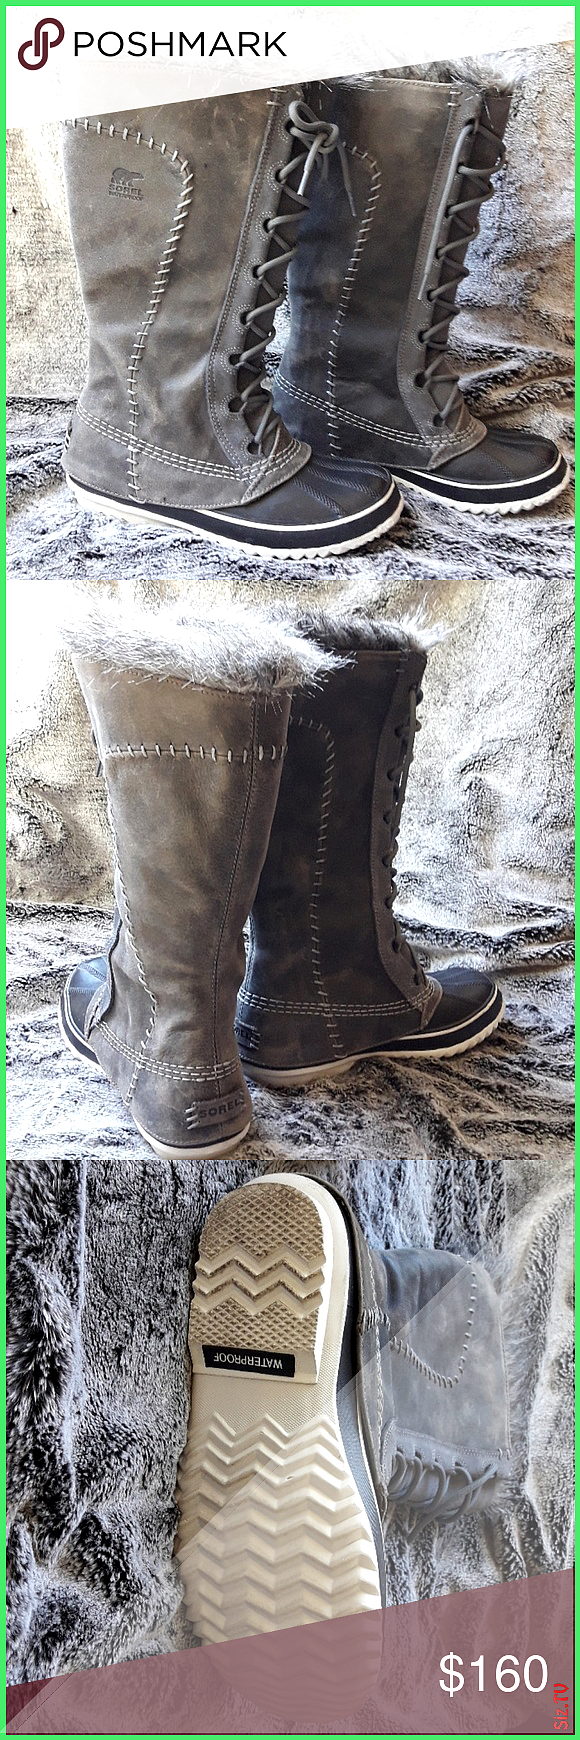 Grey Sorel Cate the Great size 7 Super cute and WARM winter boots by Sorel Worn twice for a photosho...